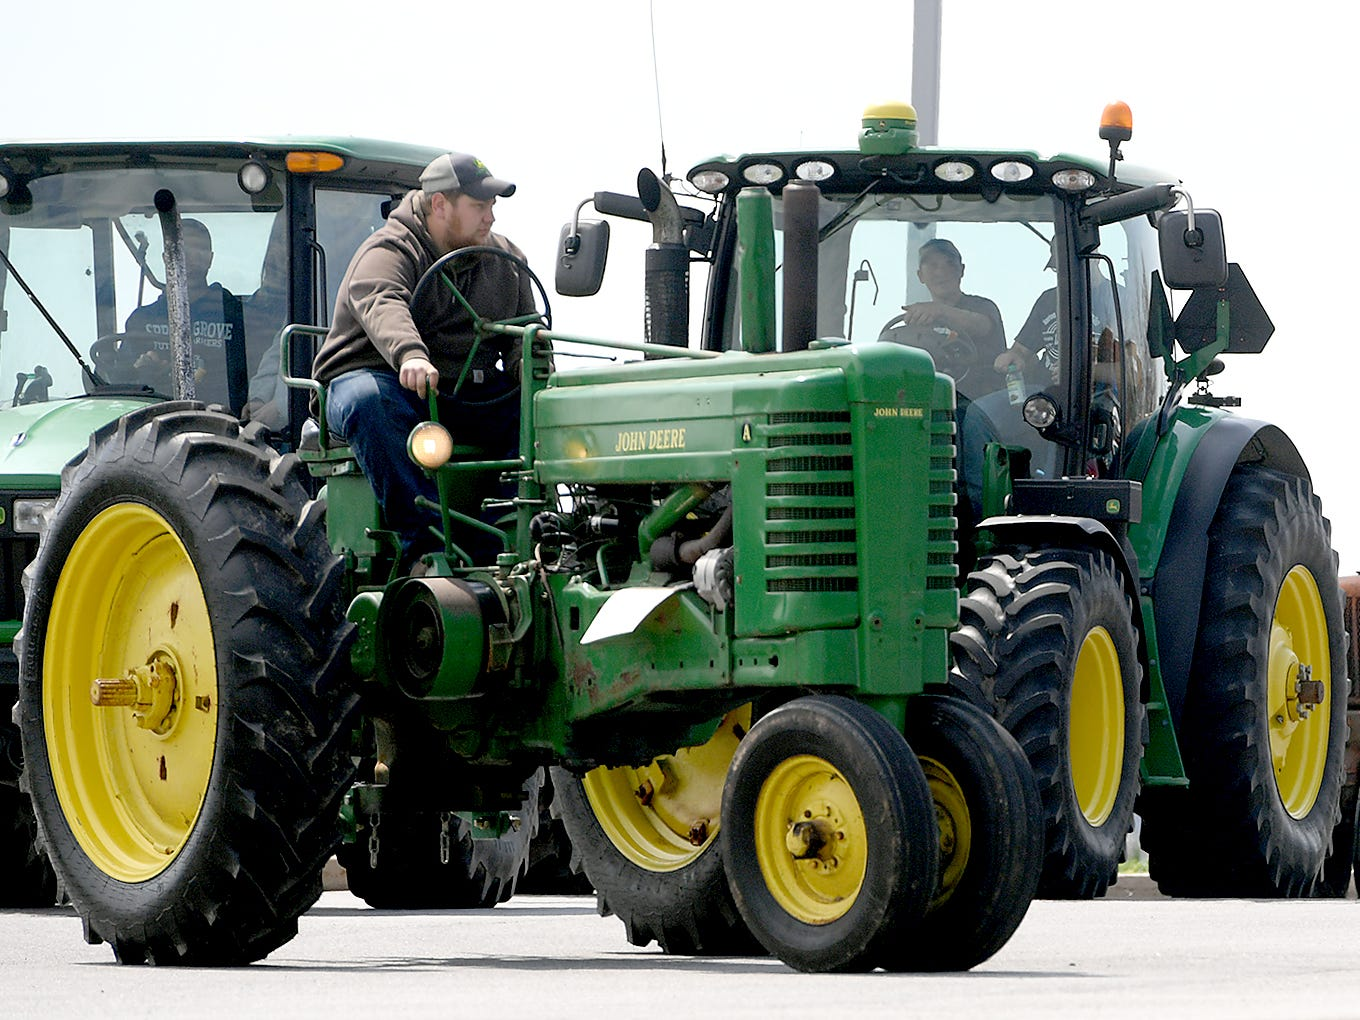 Farm equipment is situated at Spring Grove Elementary Elementary School during the district's 6th Annual Rollin' Tractor Show Thursday, April 11, 2019. The show is presented by the Future Farmers Club. Alumni and area residents brought farm equipment to display with the goal of acquainting students with the agriculture industry. The show, which included a parade of equipment, visited the intermediate and elementary schools. Bill Kalina photo